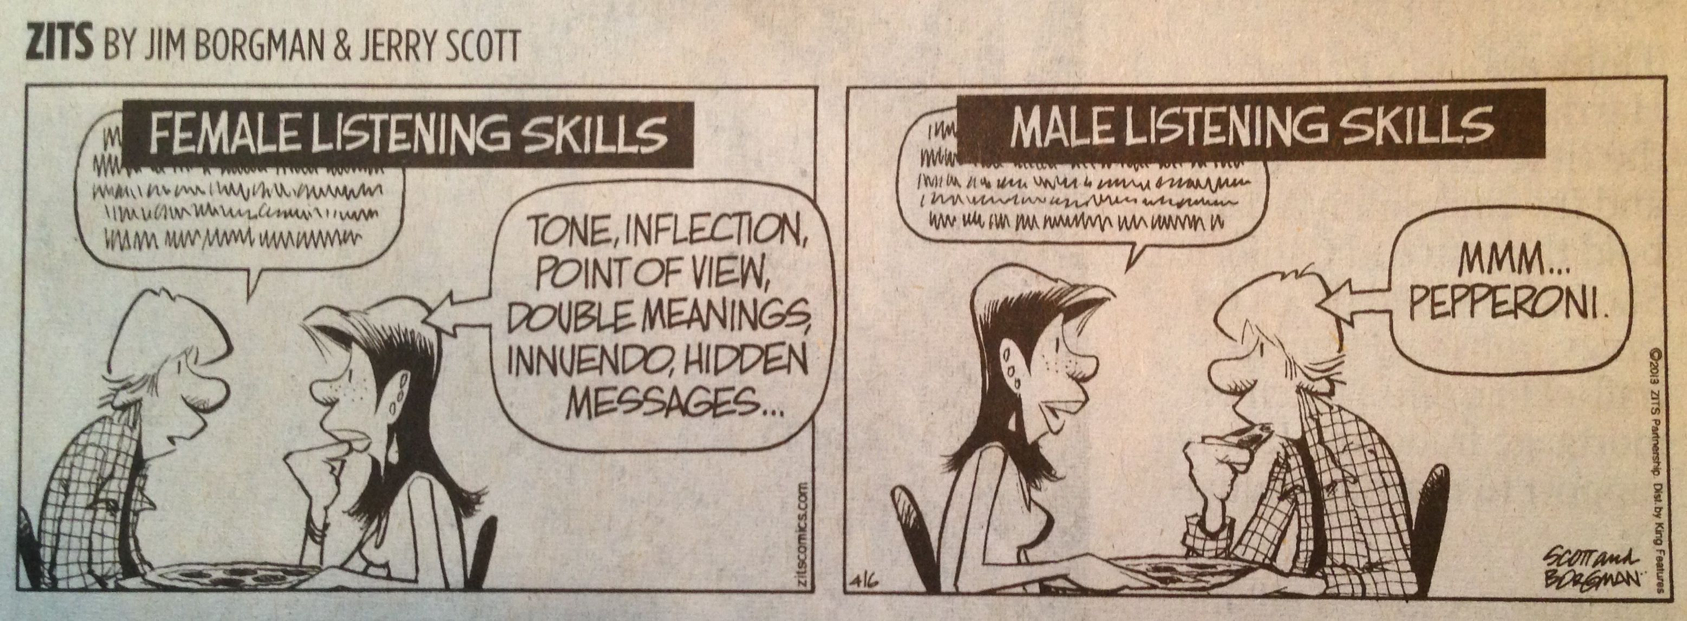 Female listening skills differ from male listening skills...